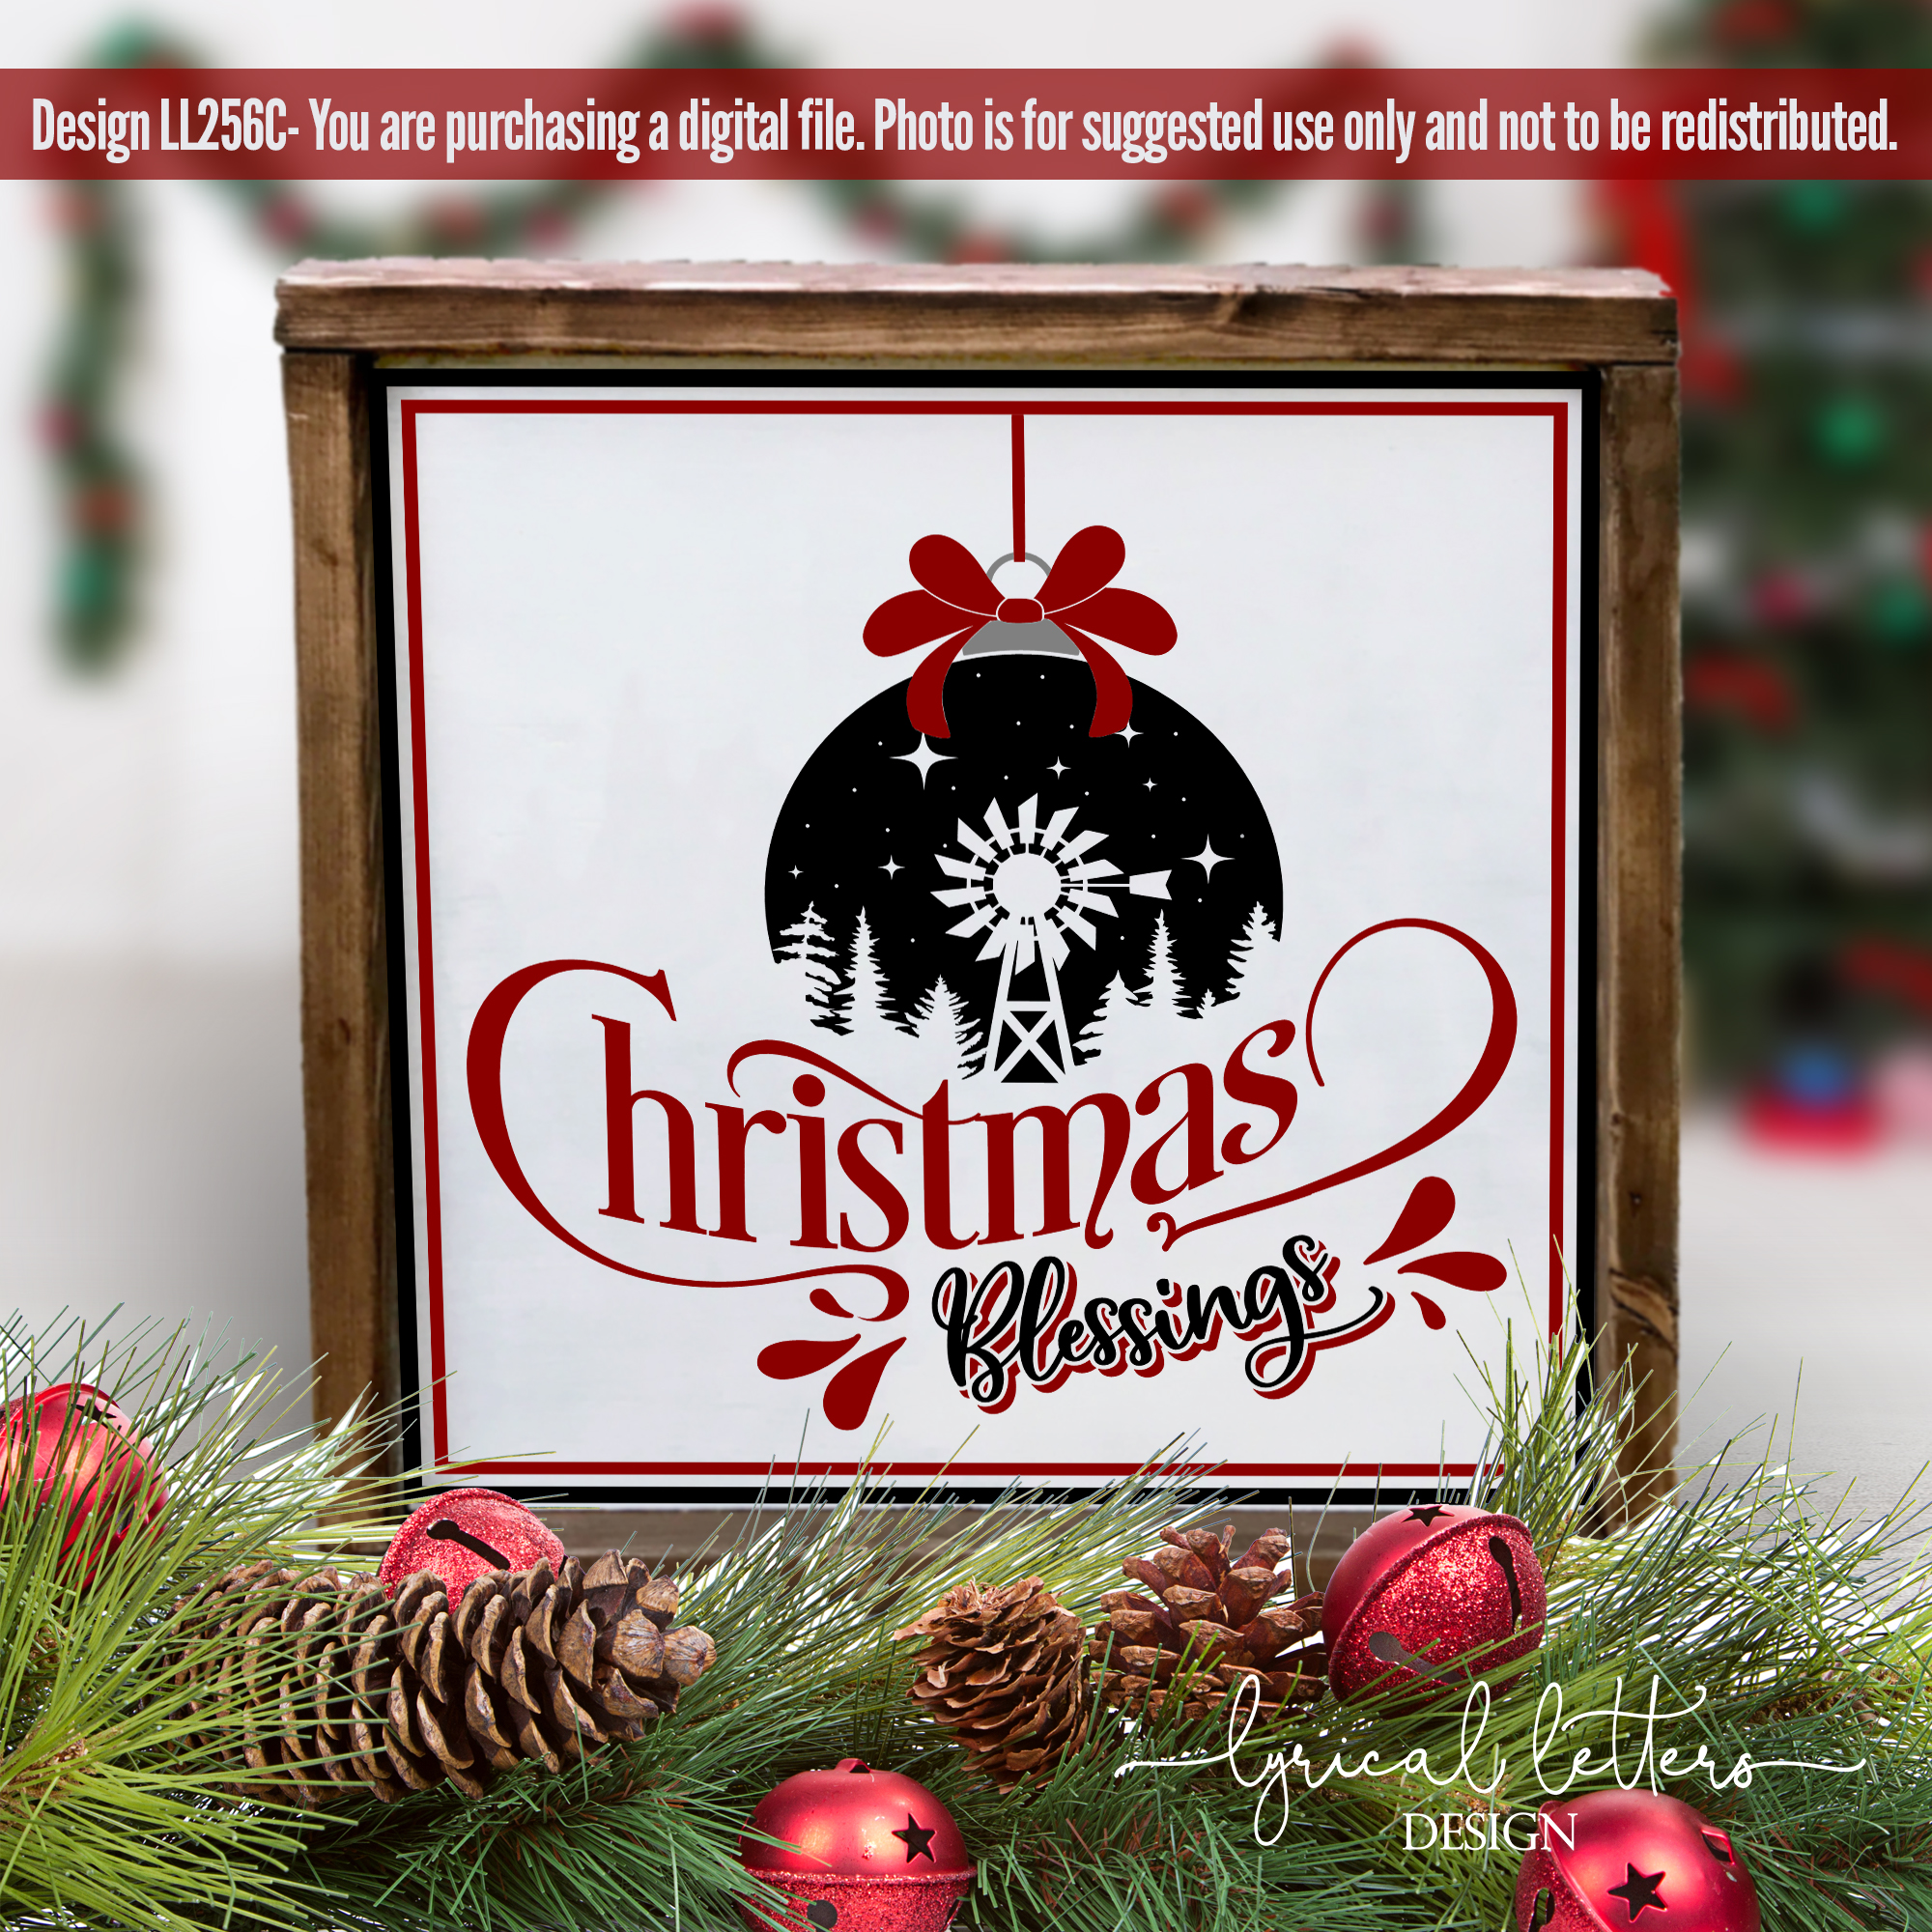 Farmhouse Christmas Blessings with Windmill SVG LL256C example image 2